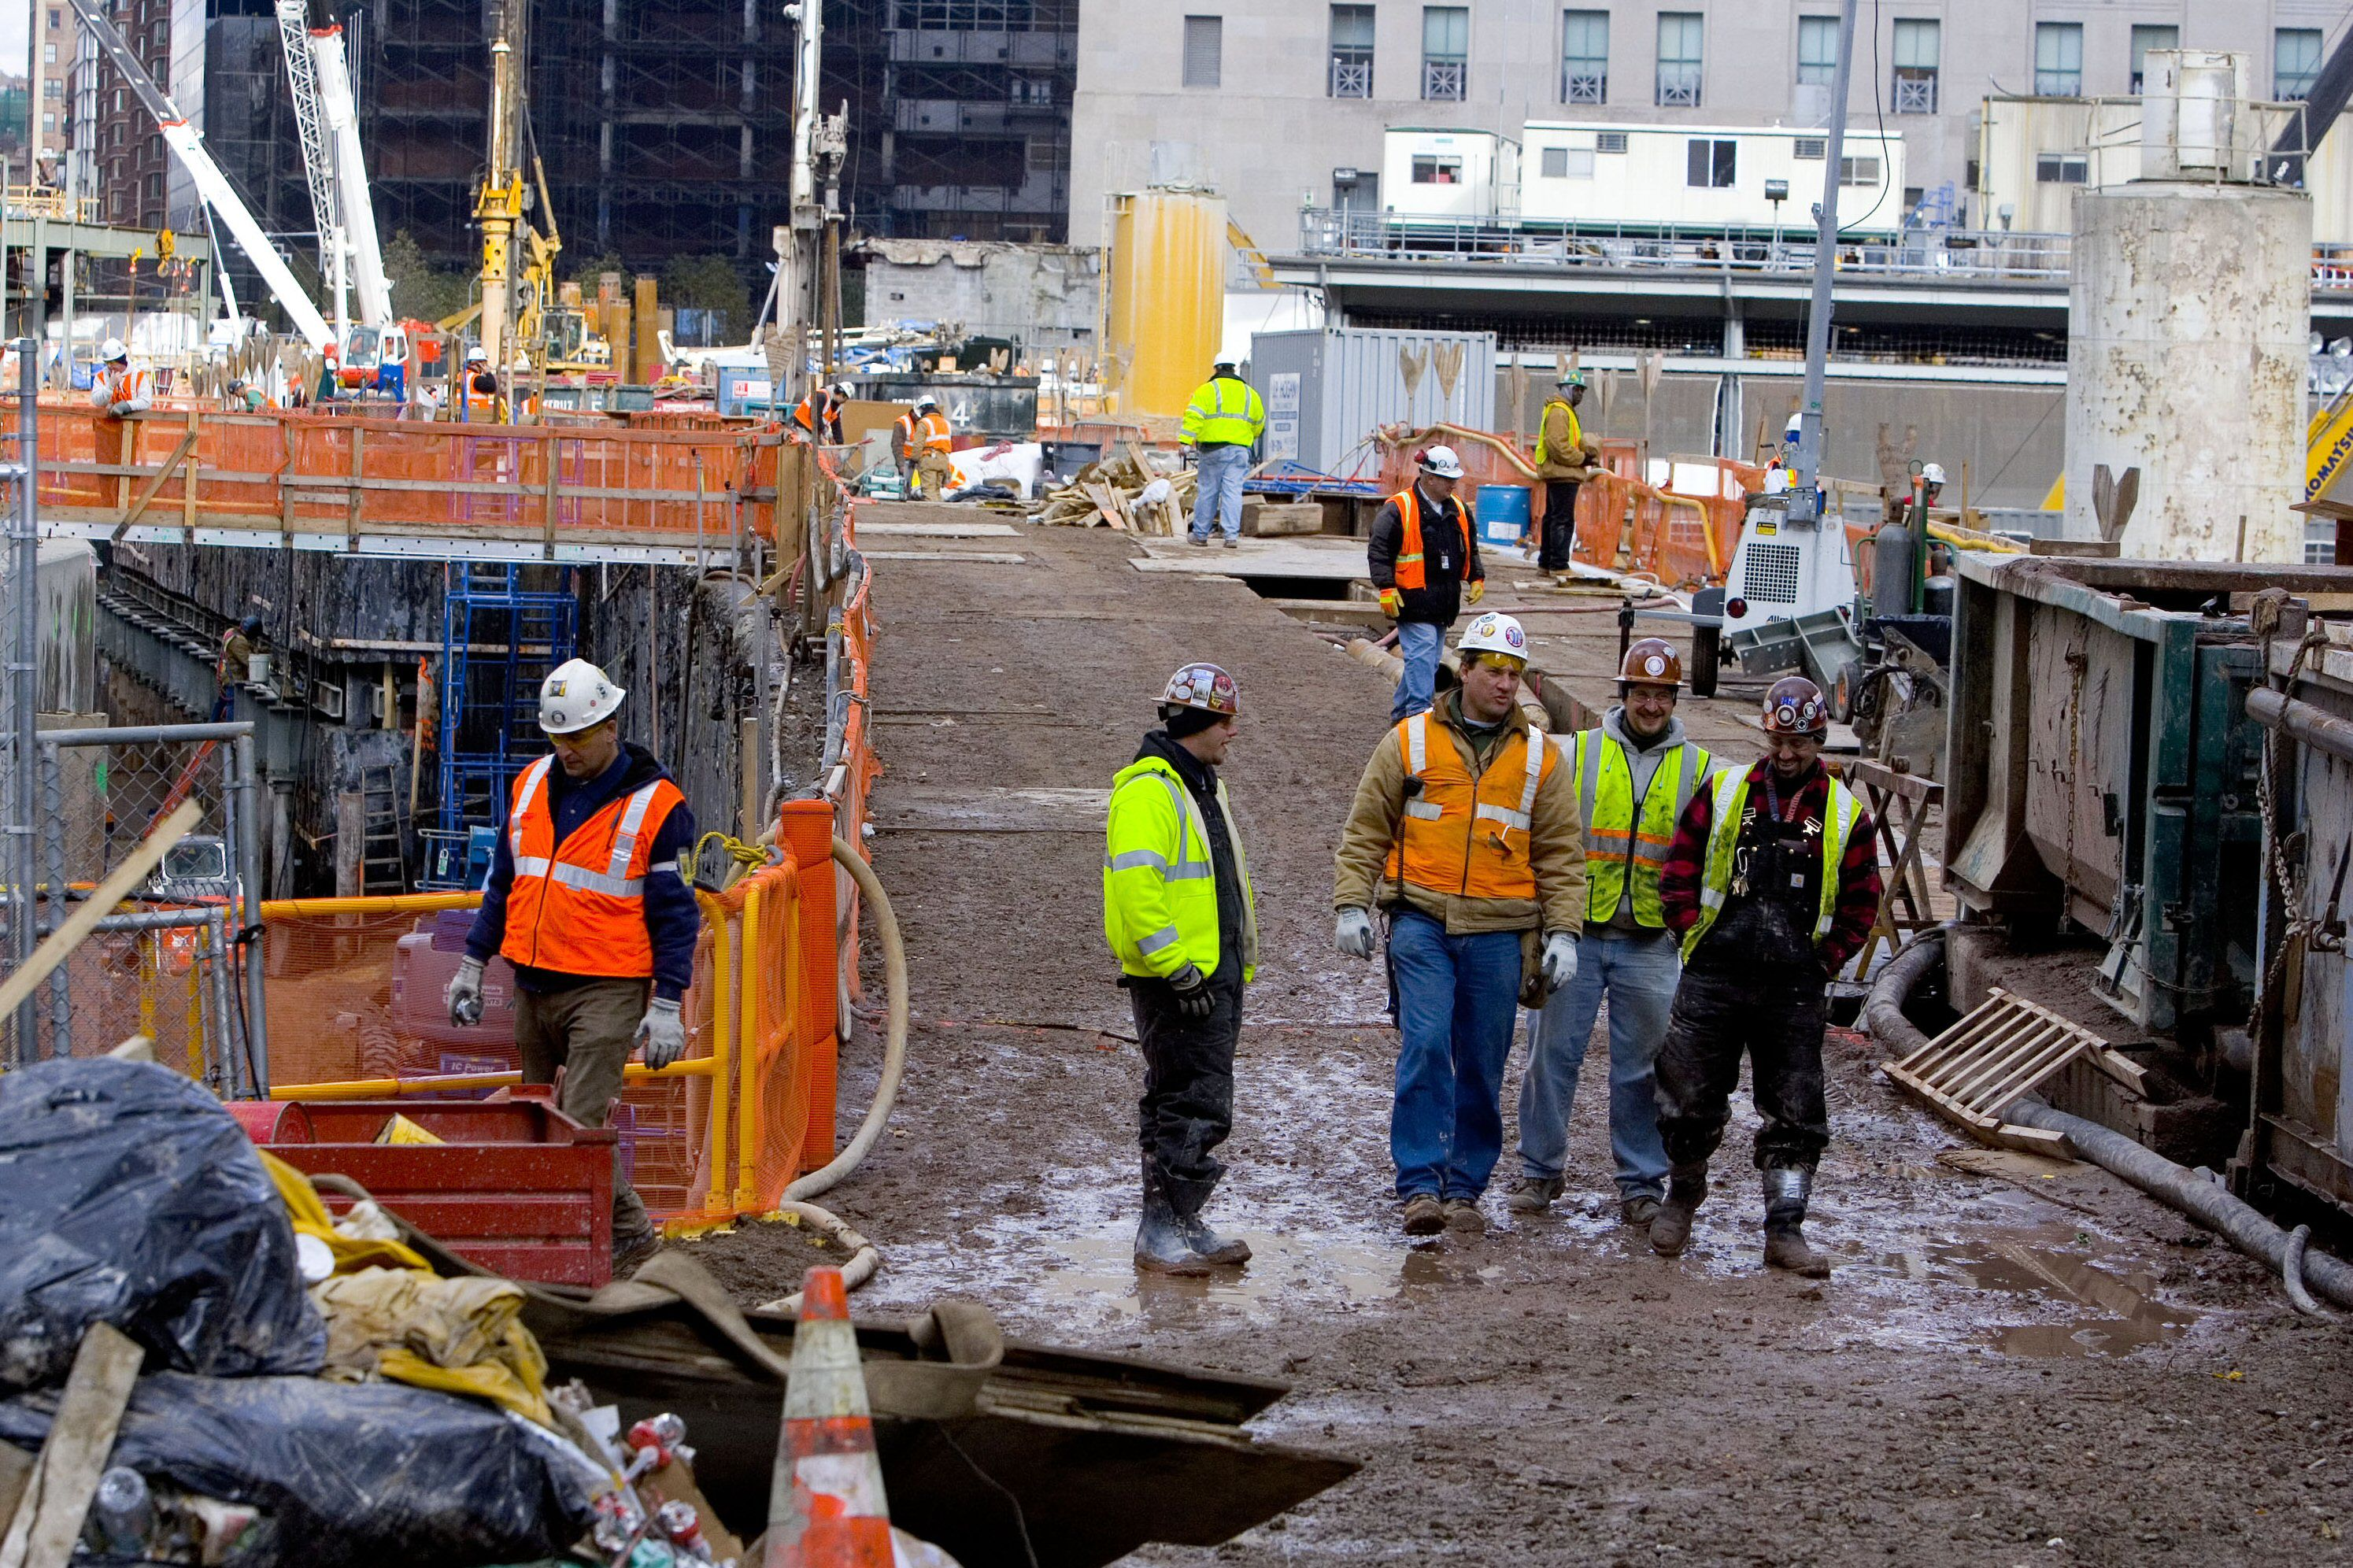 close up of muddy construction site with workers in brightly colored vests and hard hats